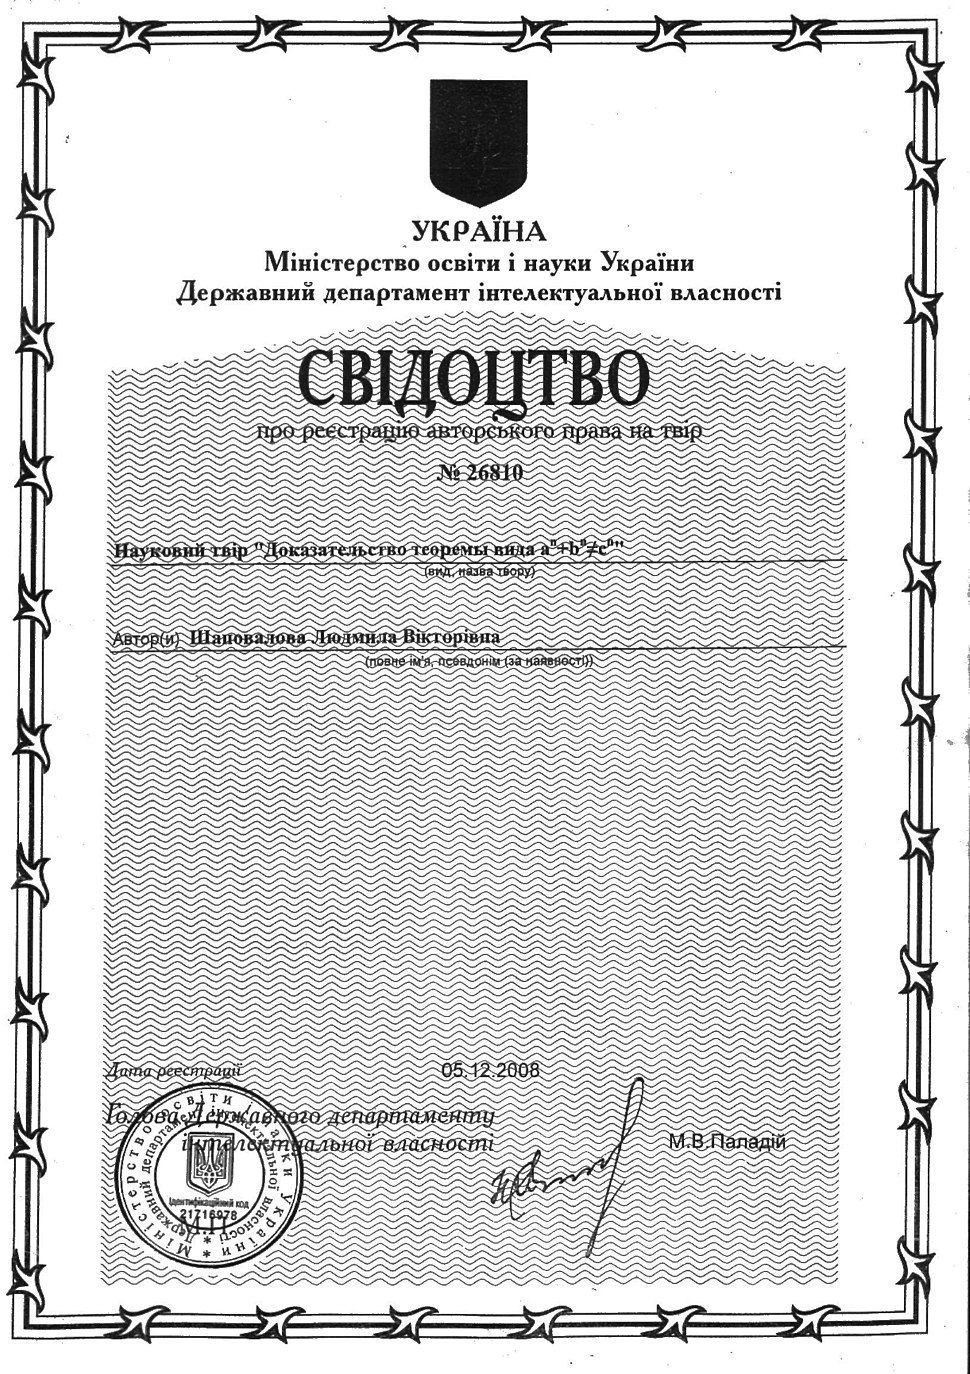 Fermat Last Theorem %22proof%22 registered by Ukraine officials